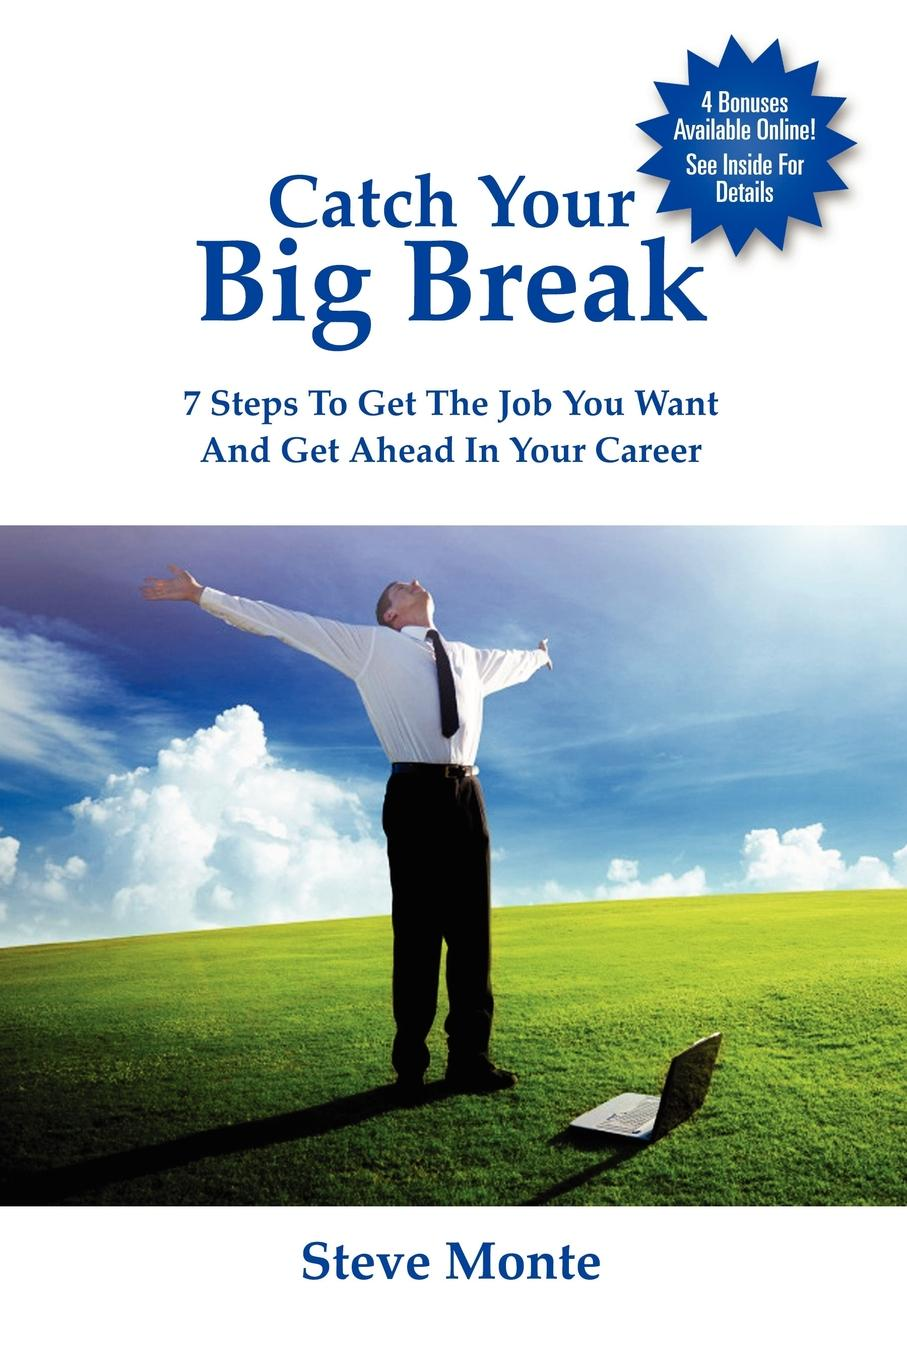 Catch Your Big Break Get the job you want. Get ahead in your career. Get a big paycheck...